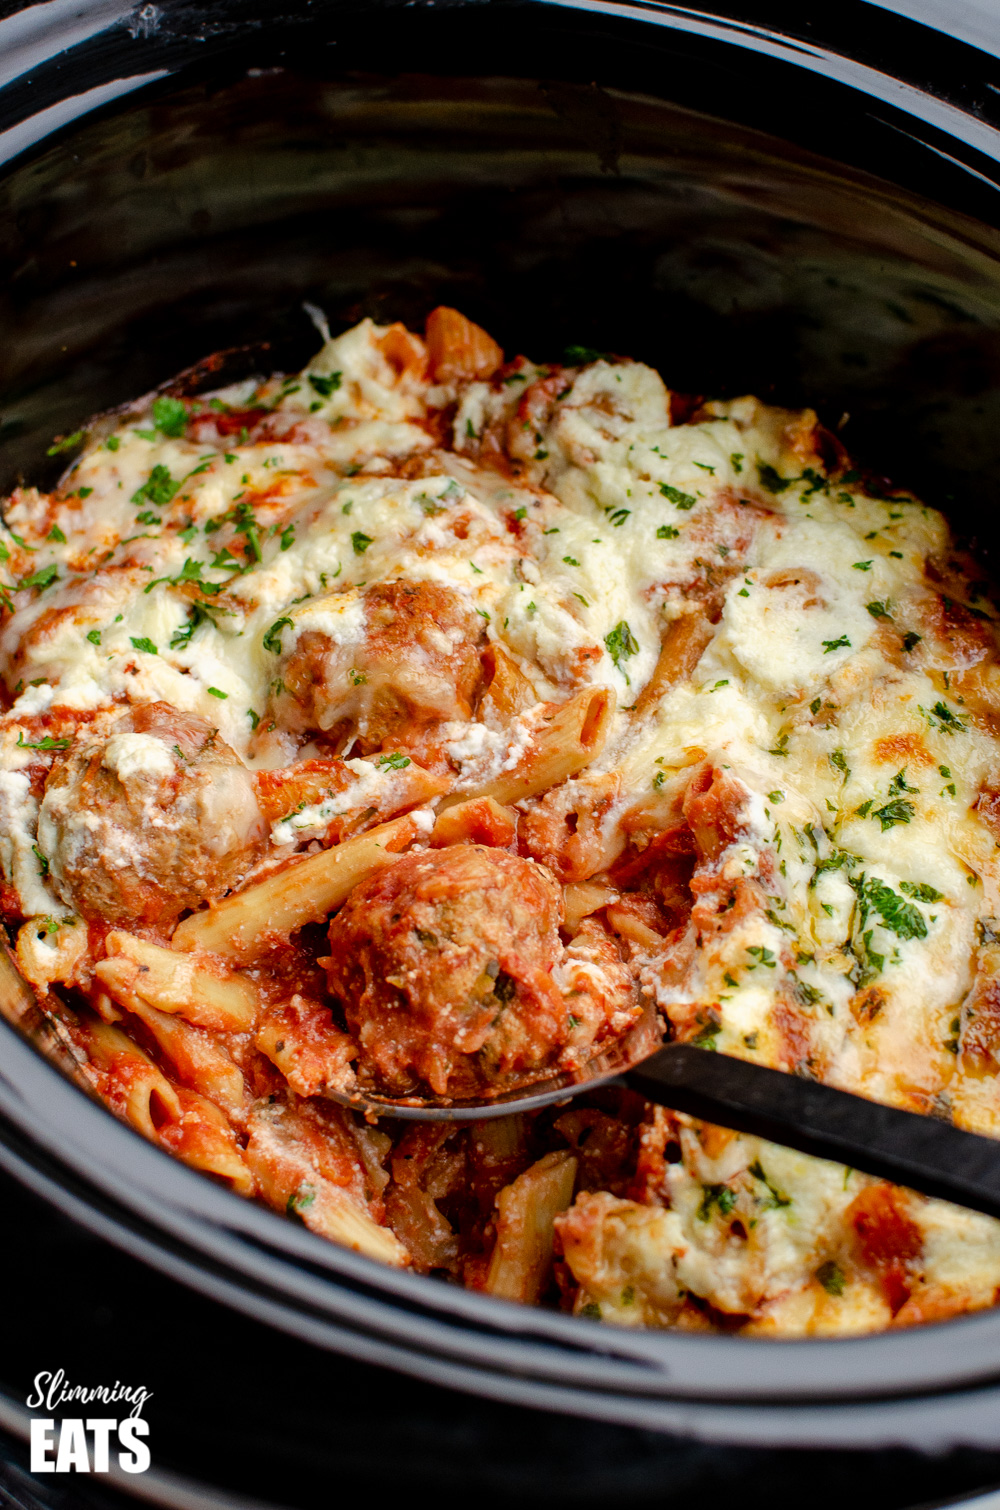 spooning meatballs out of slow cooker chicken meatball pasta bake